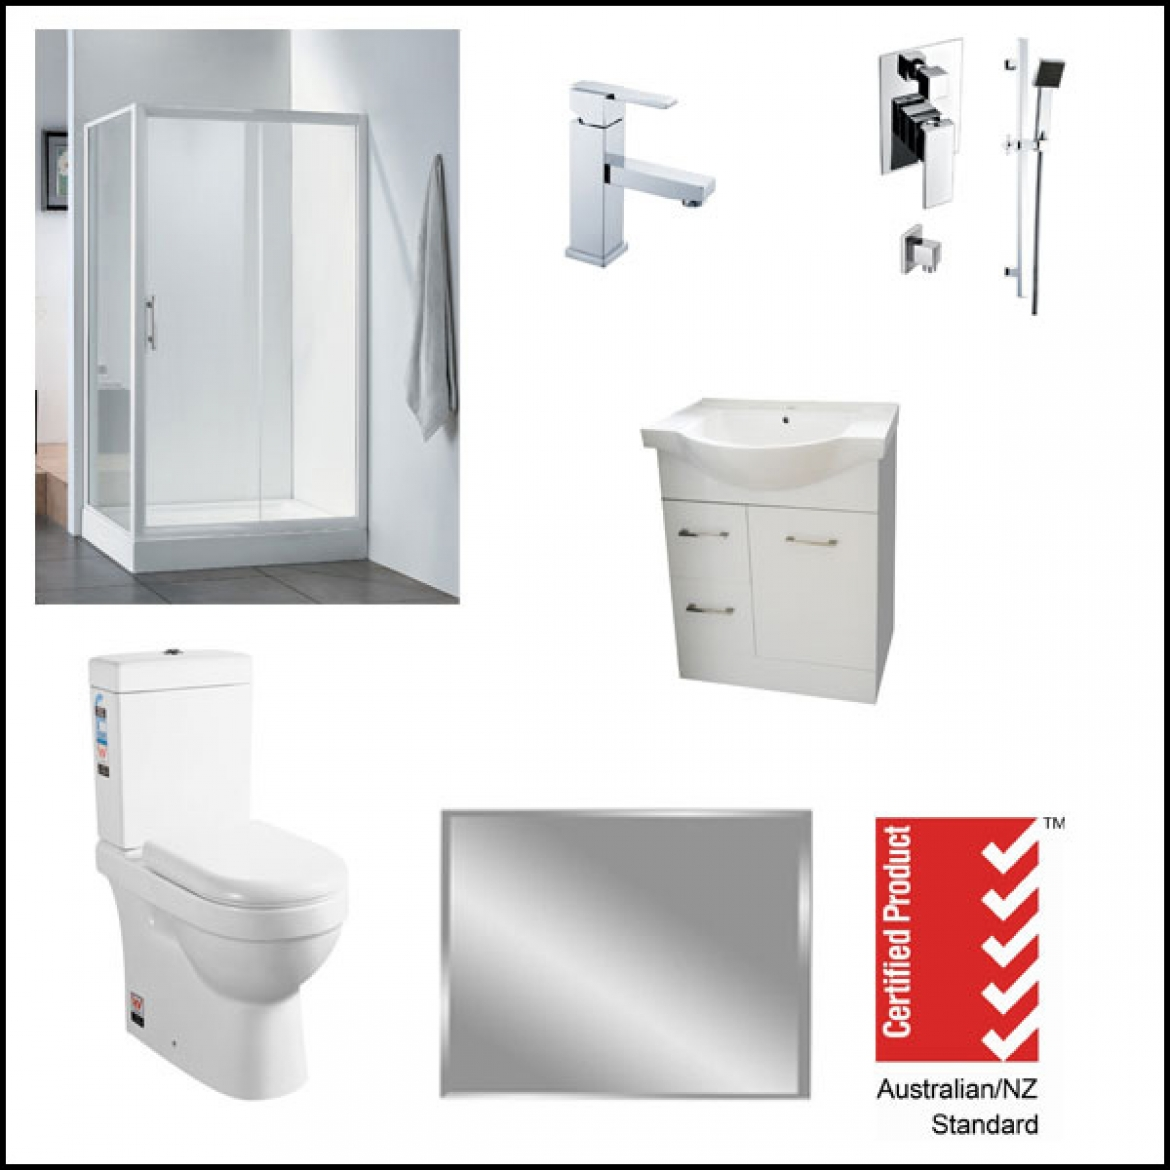 Shower screen+Bathroom Vanity+Toilet suite package deal